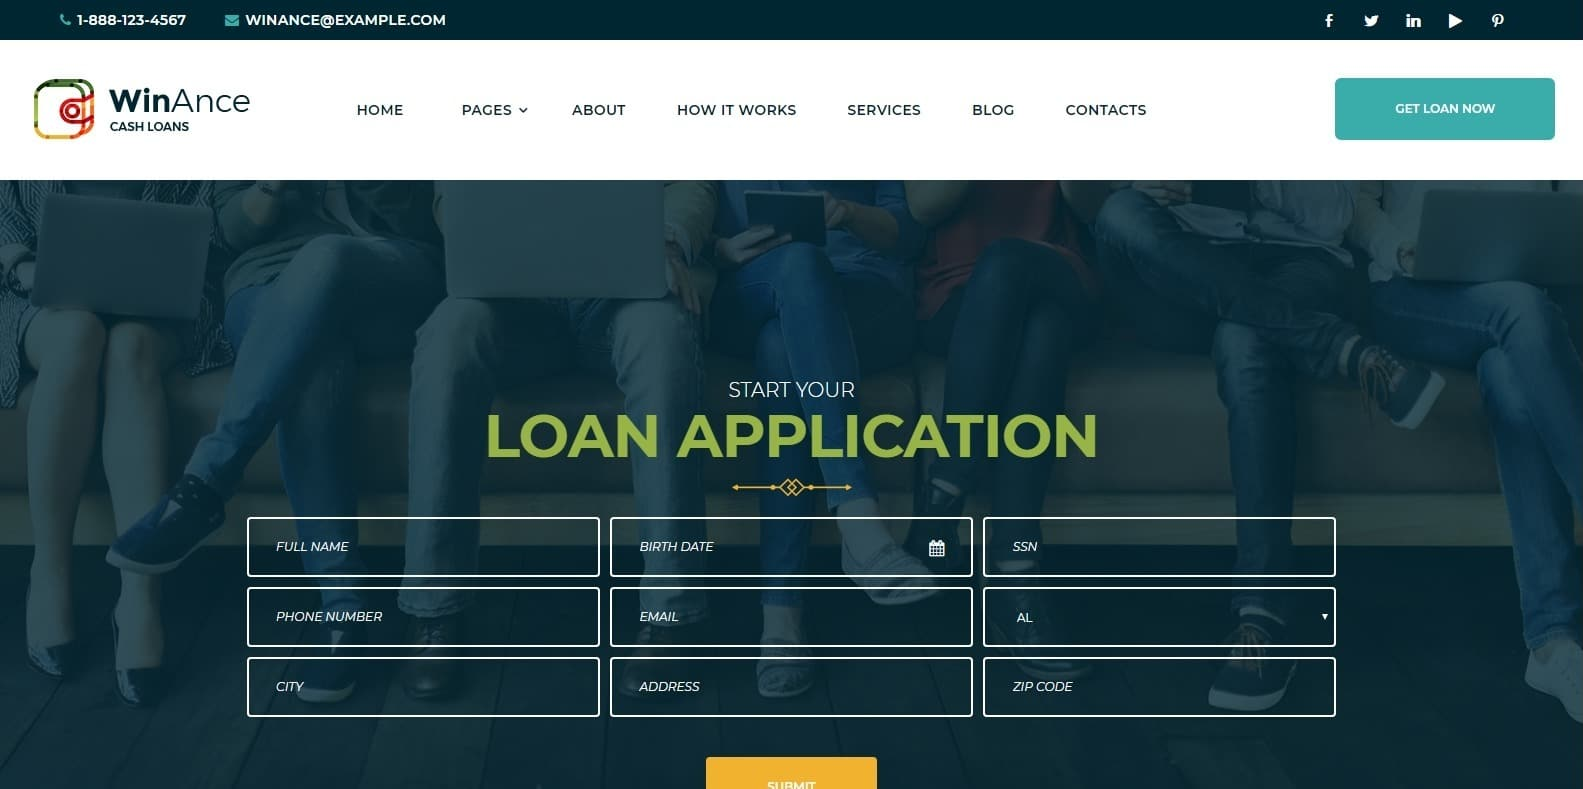 winance-wordpress-mortgage-broker-website-template